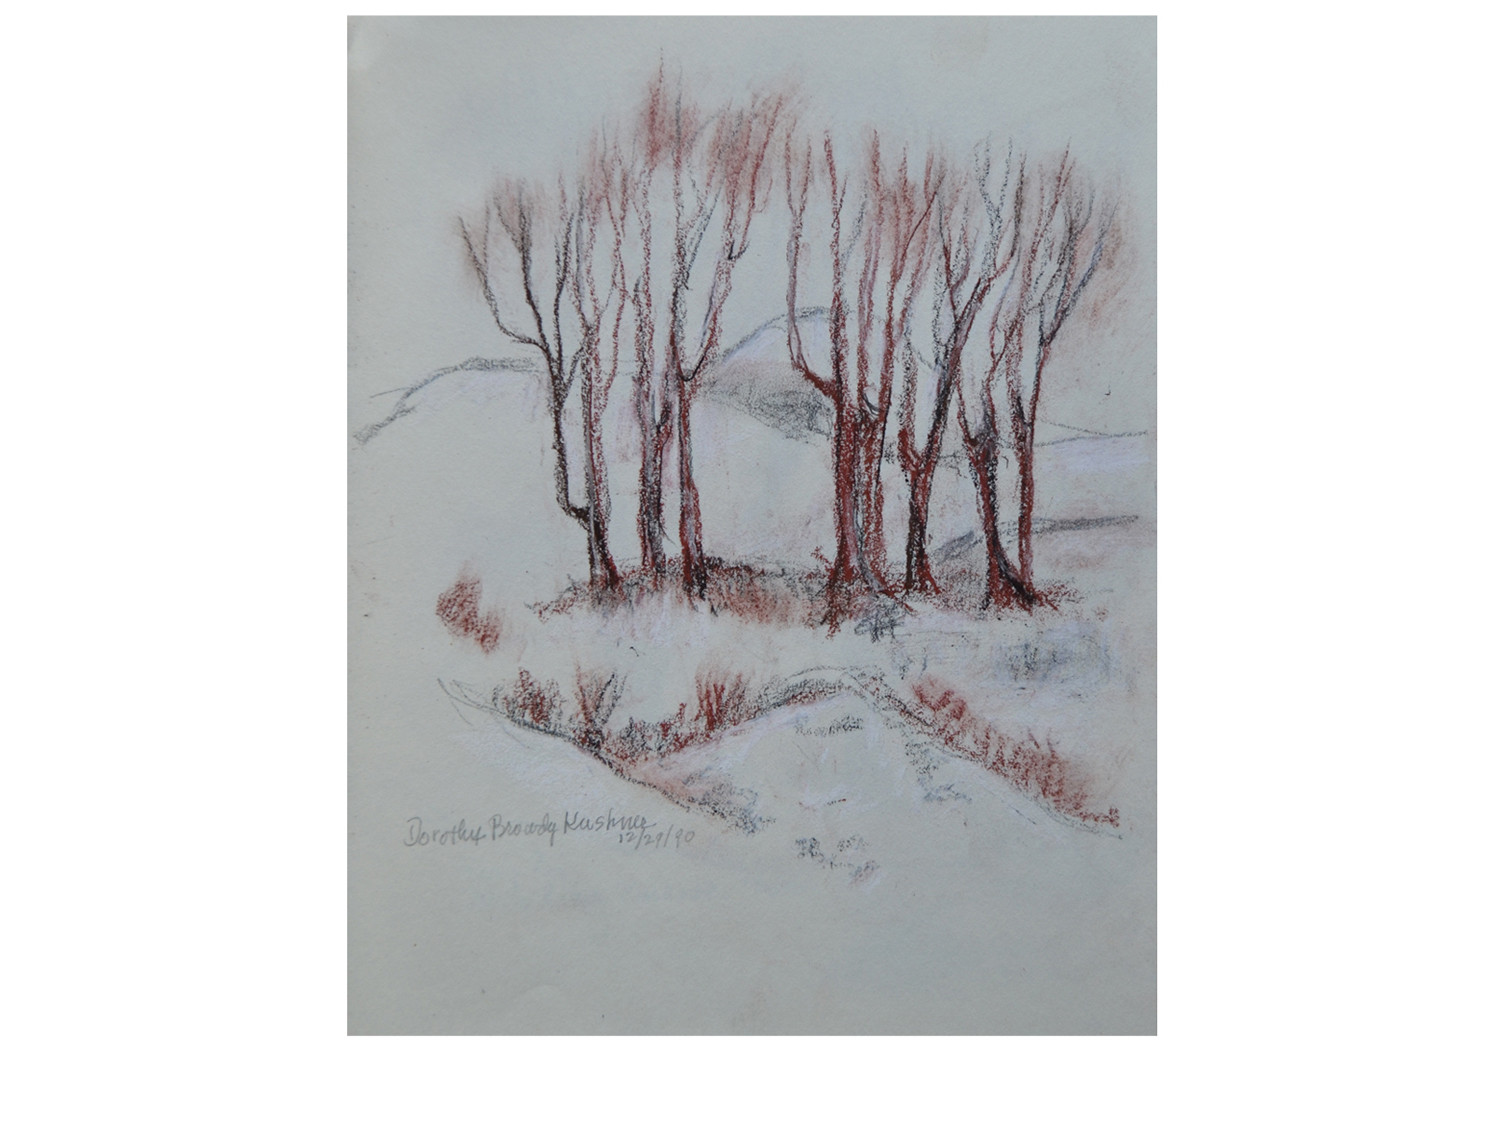 Dorothy Browdy Kushner Trees in the Snow 1990-11